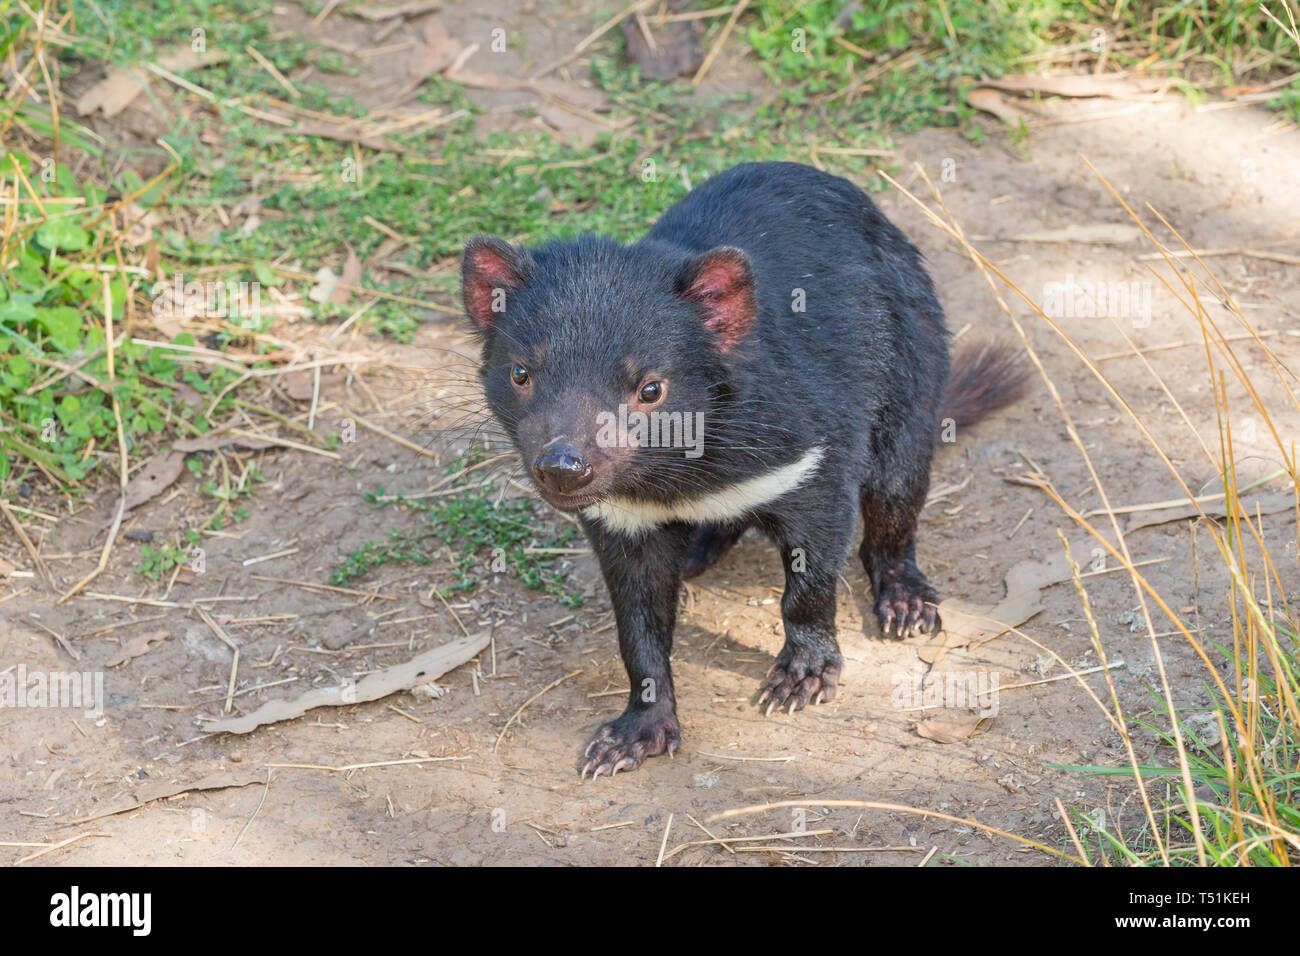 The Tasmanian Devil (Sarcophilus harrisii) is a carnivorous marsupial of the family Dasyuridae. Stock Photo